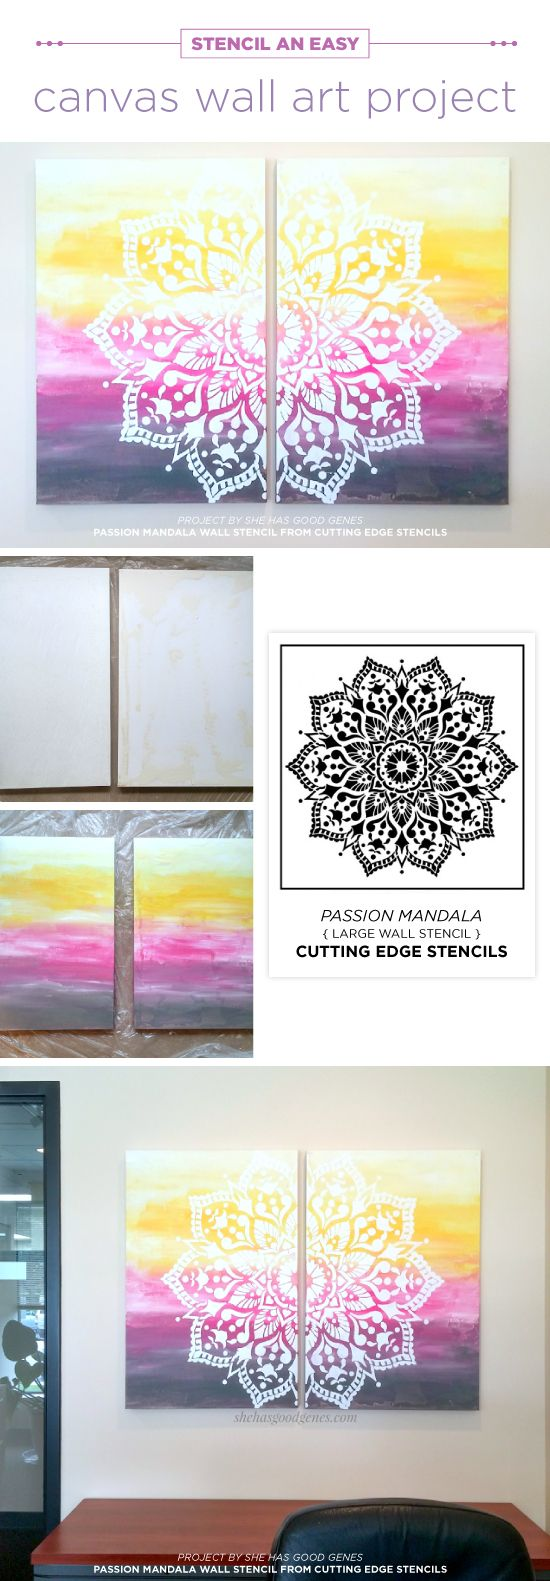 Cutting Edge Stencils shares how to stencil DIY canvas artwork using the  Passion Mandala wall pattern